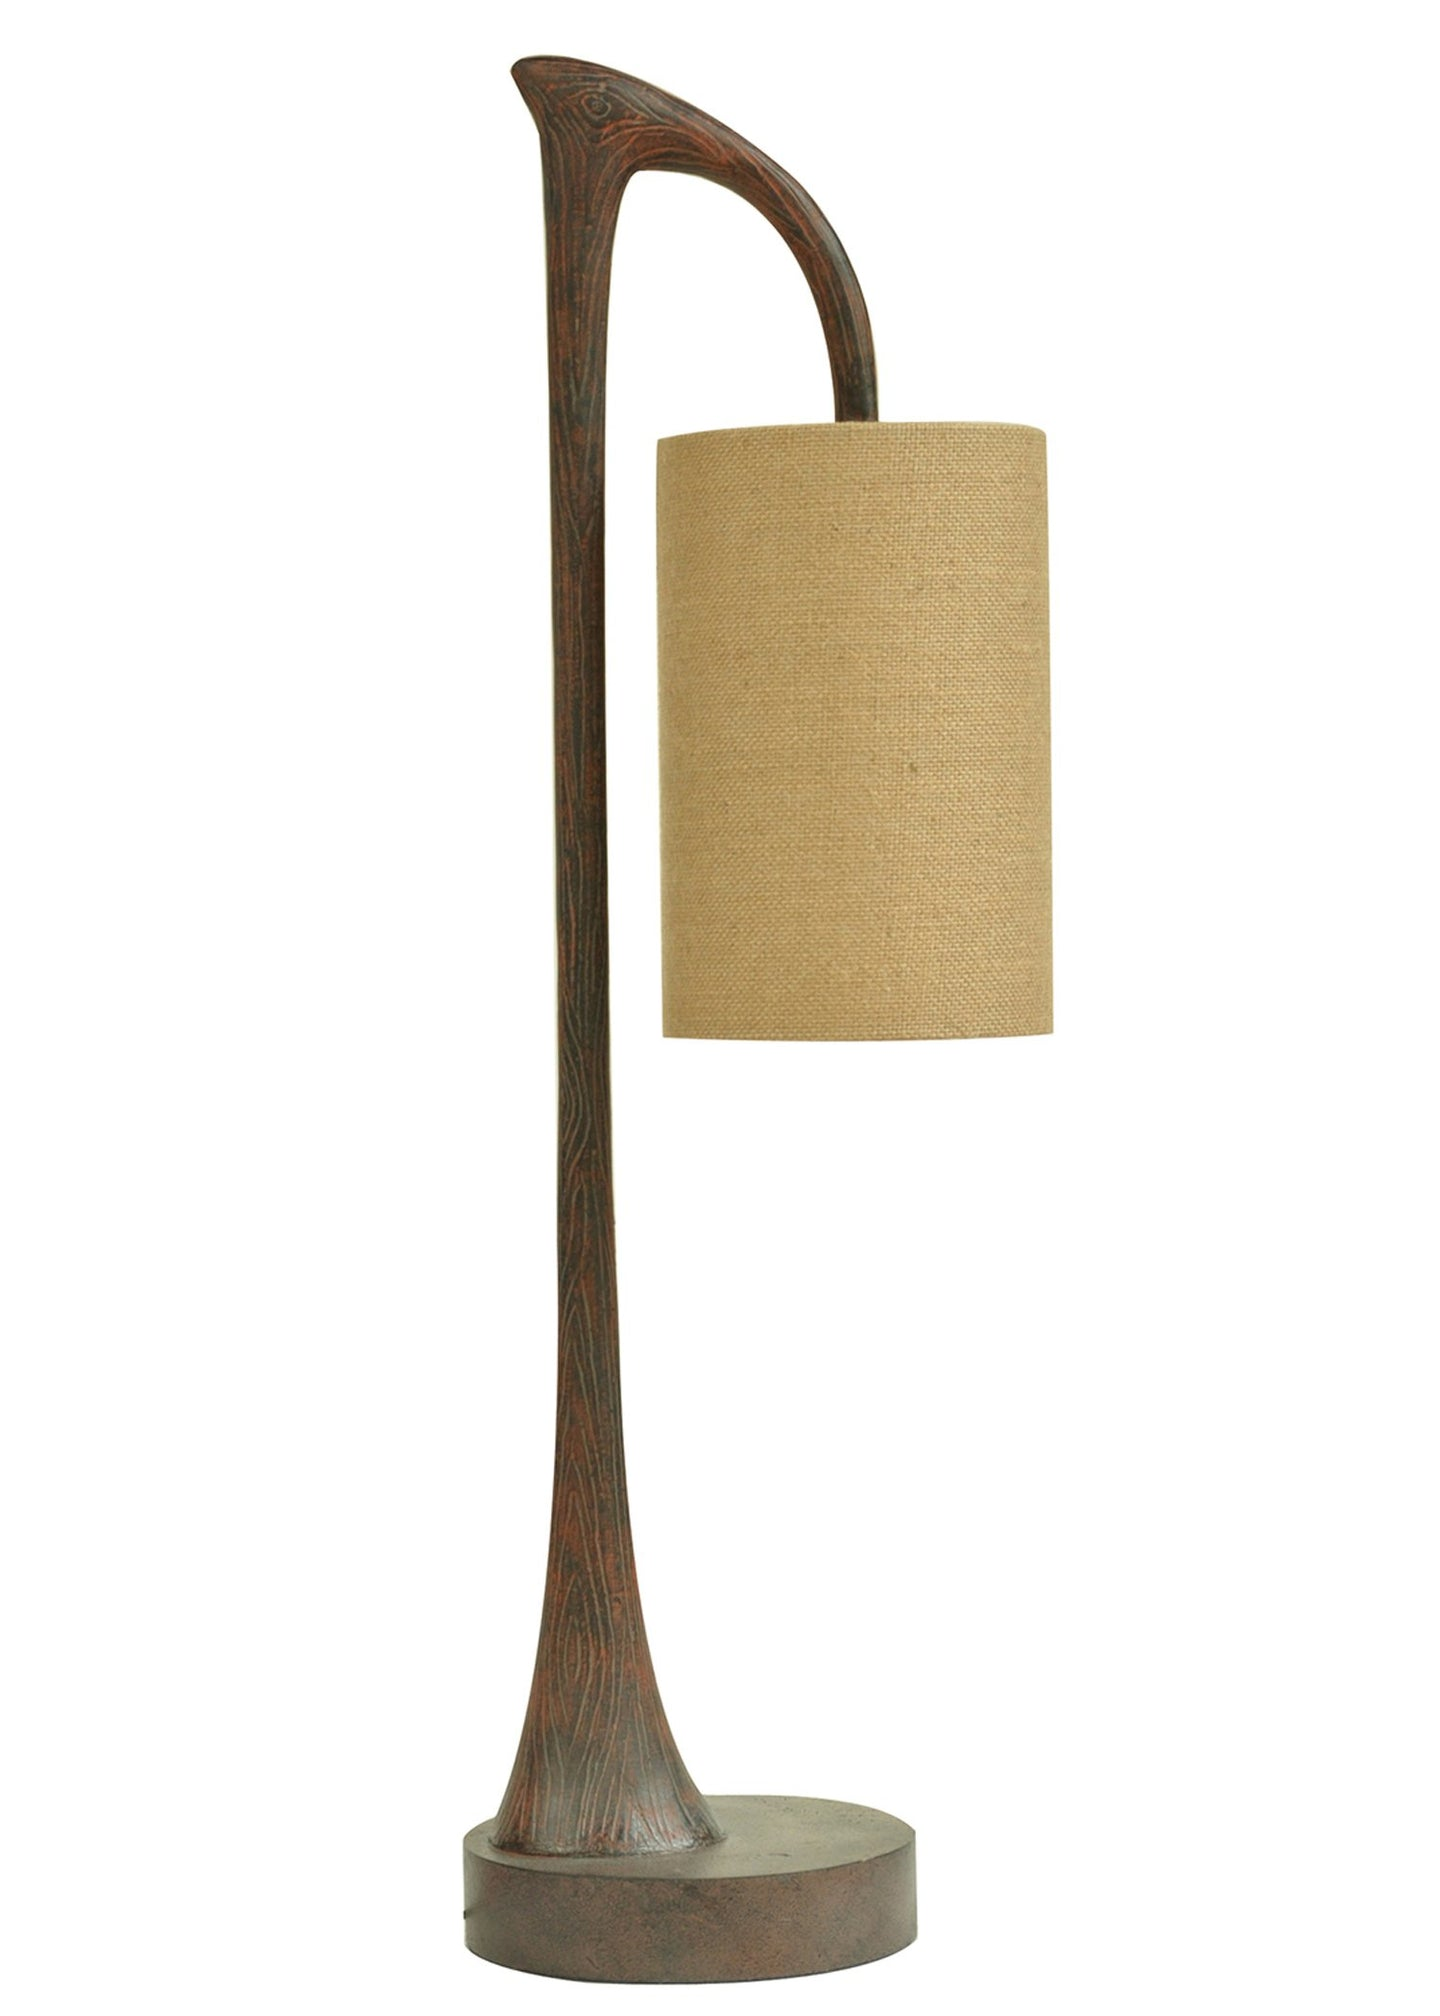 West Larce Table Lamp